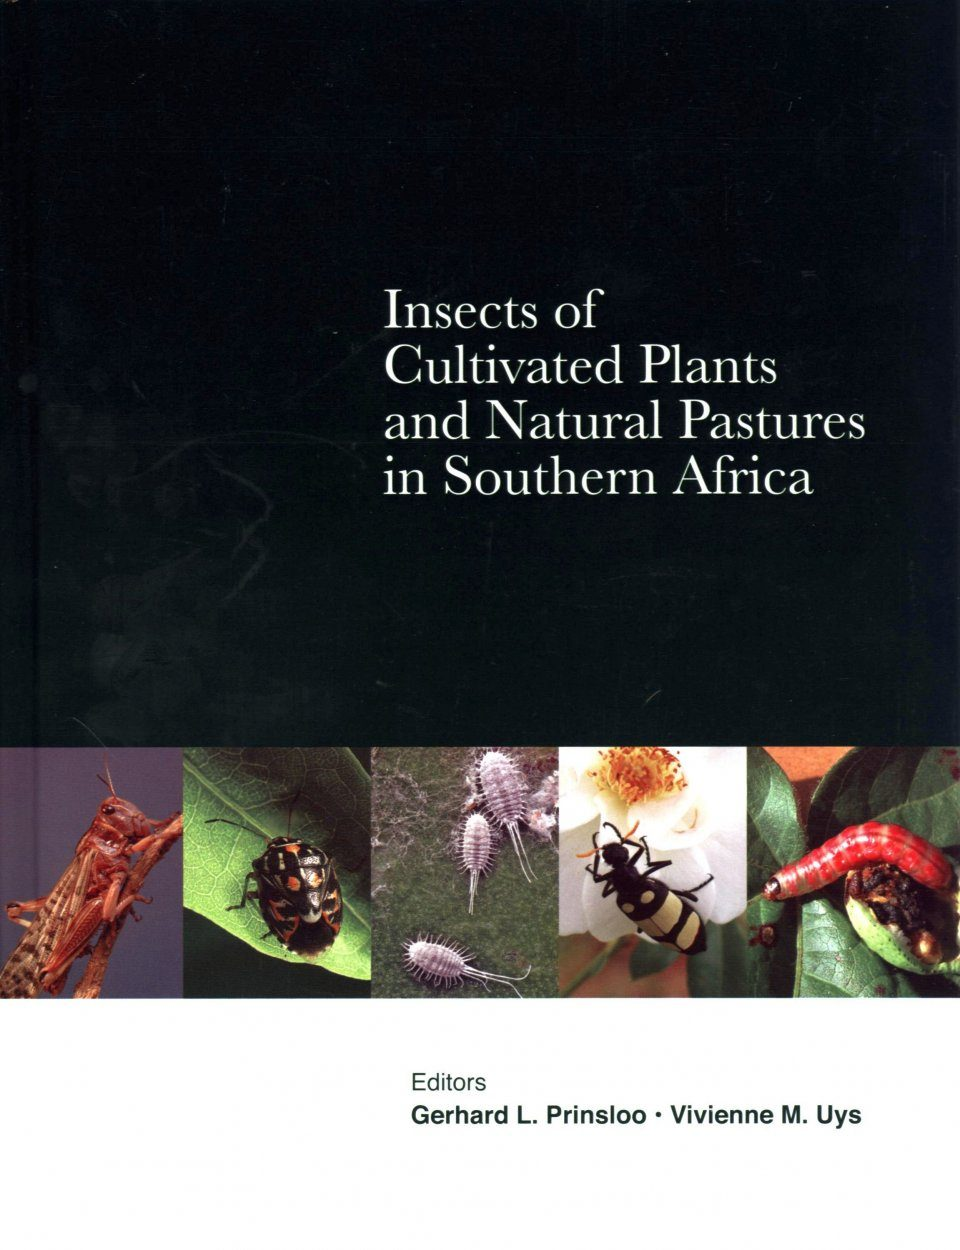 Insects of Cultivated Plants and Natural Pastures in Southern Africa